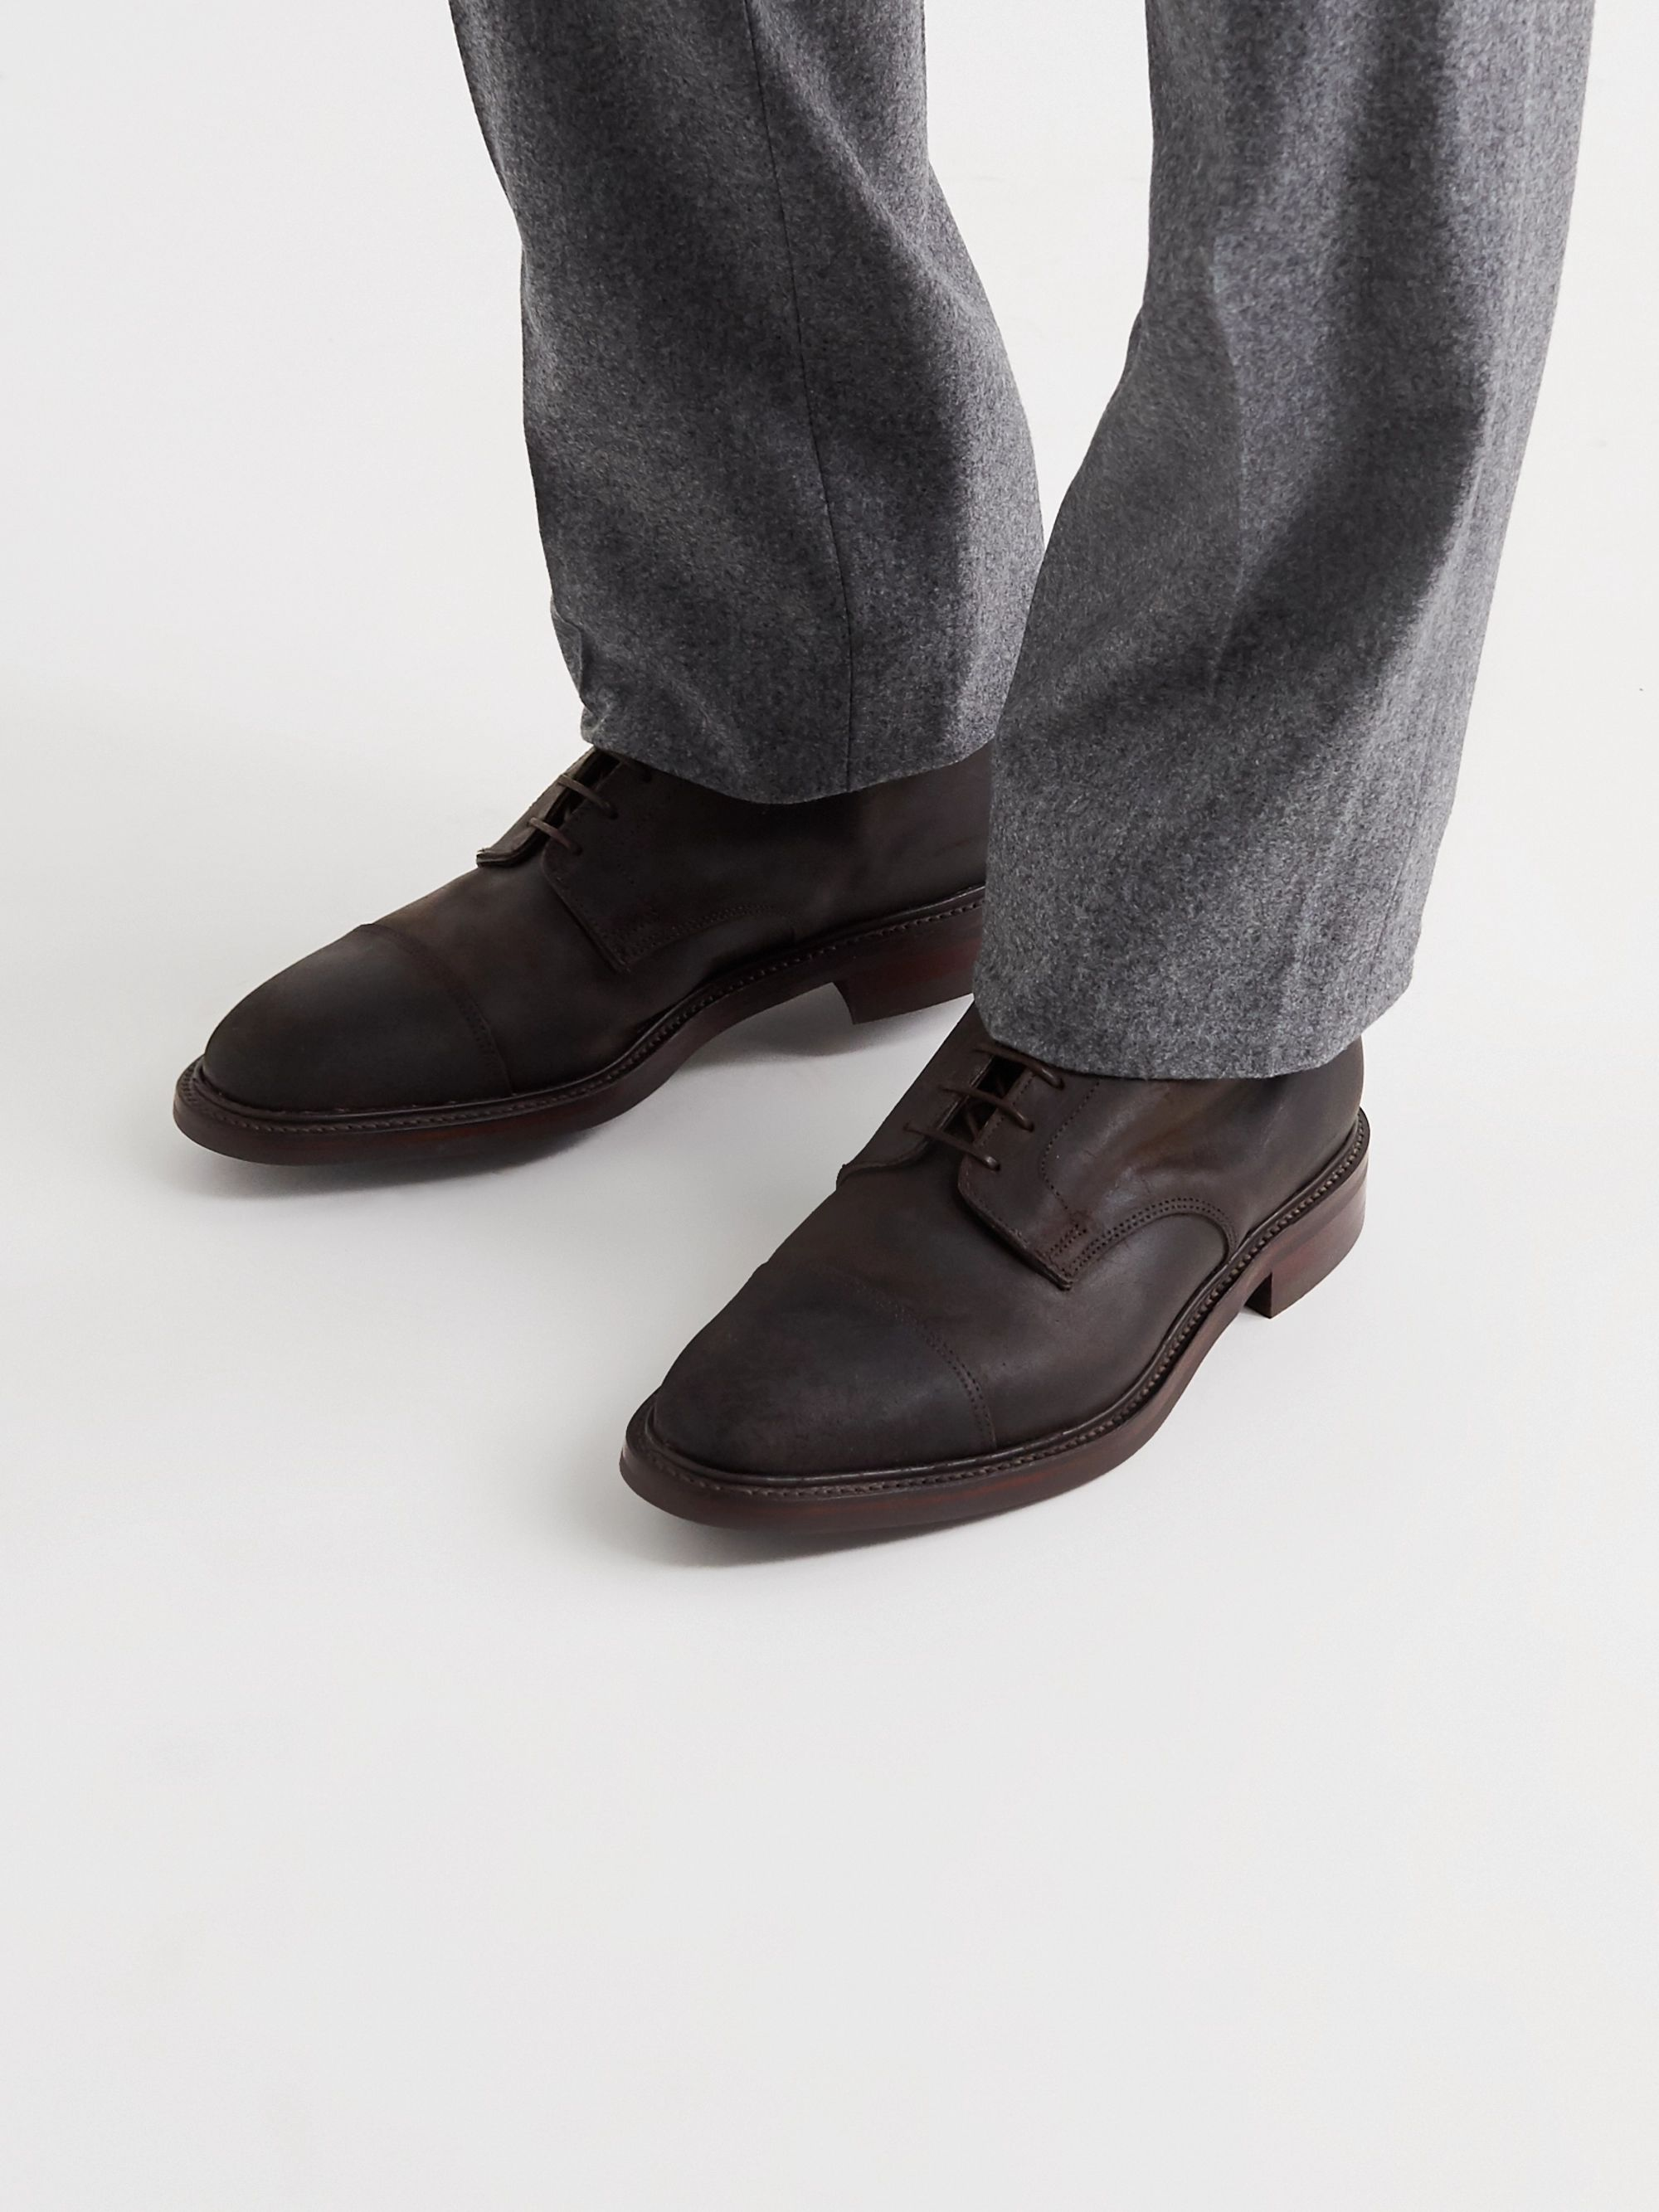 Kingsman + George Cleverley Taron Cap-Toe Roughout Leather Boots